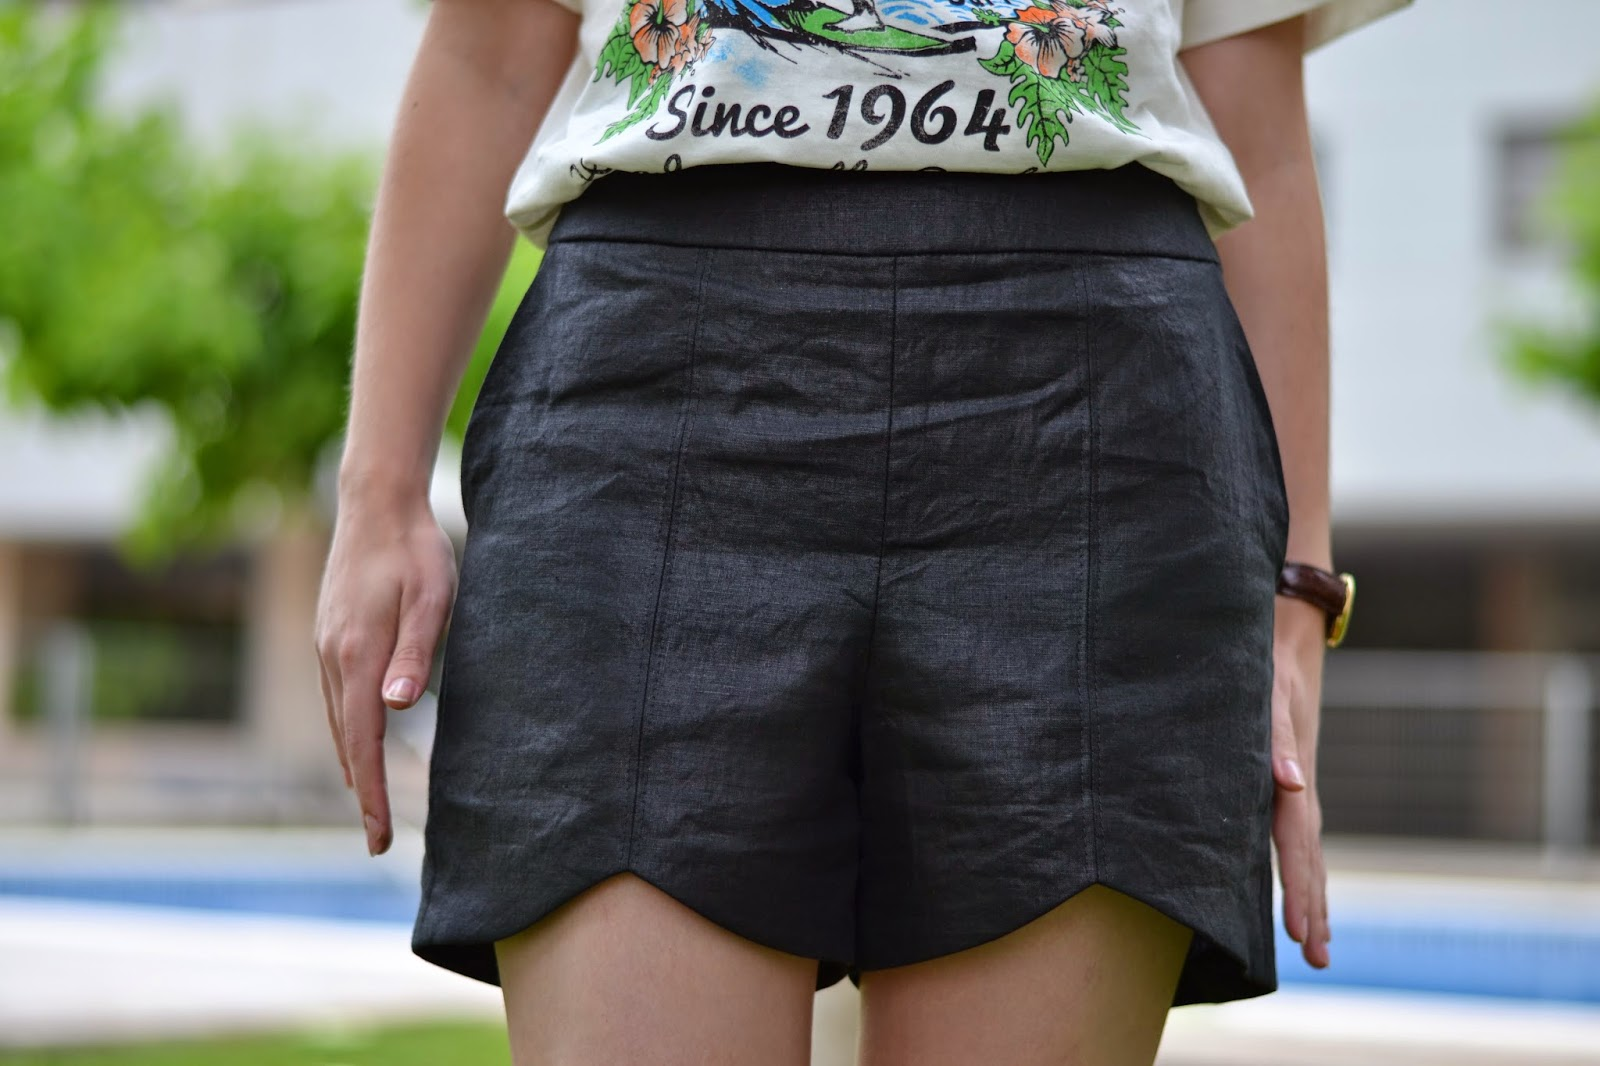 Scalloped Hem shorts by pattern runway in linen